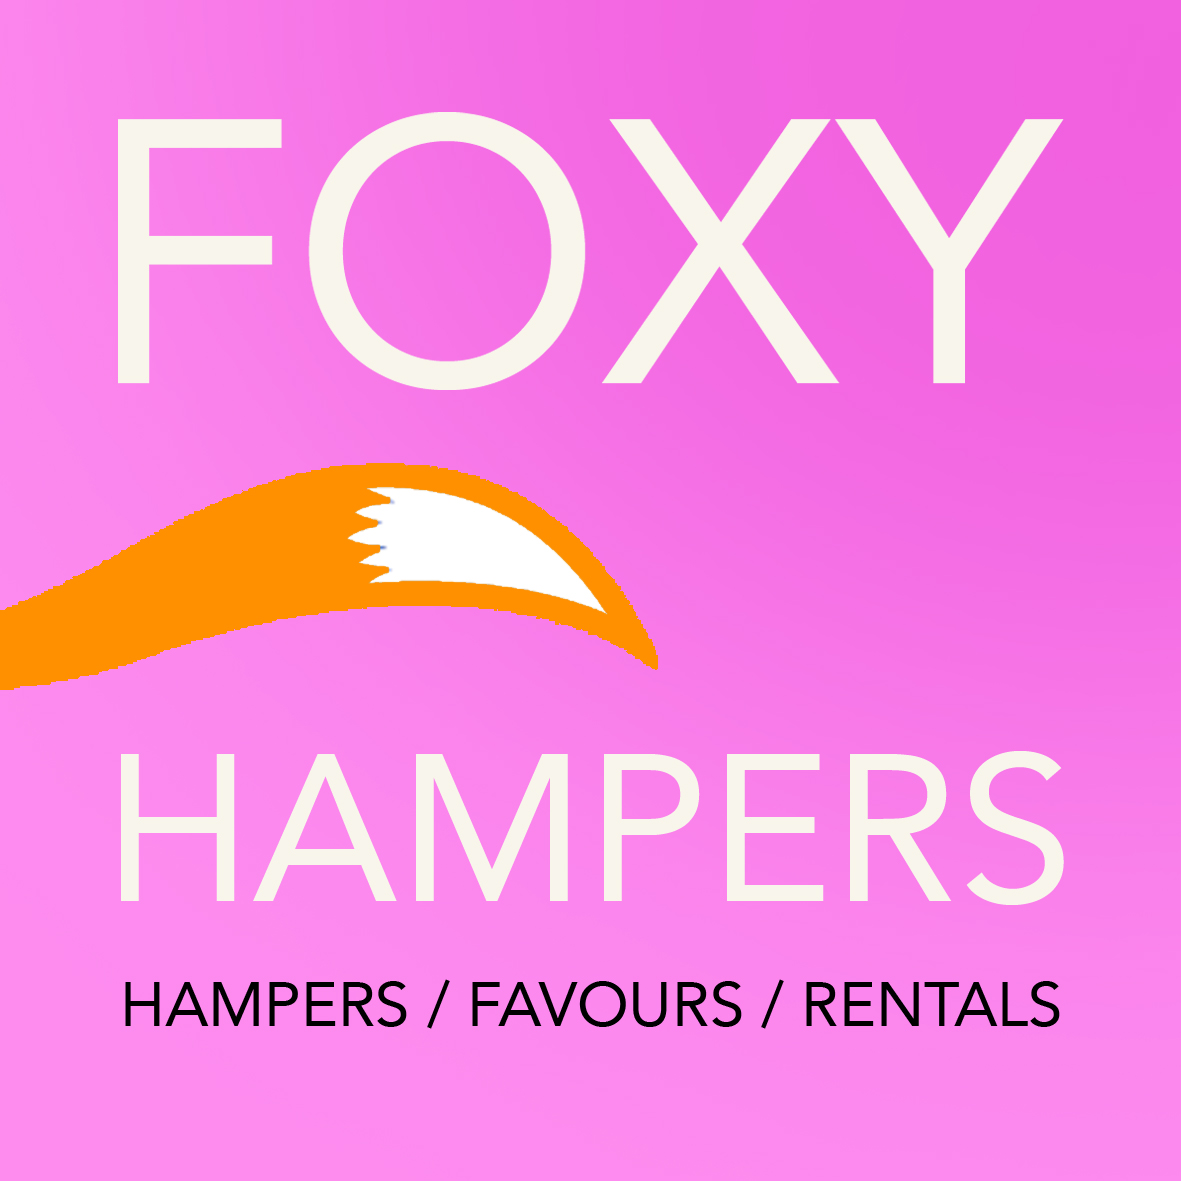 Foxy Hampers